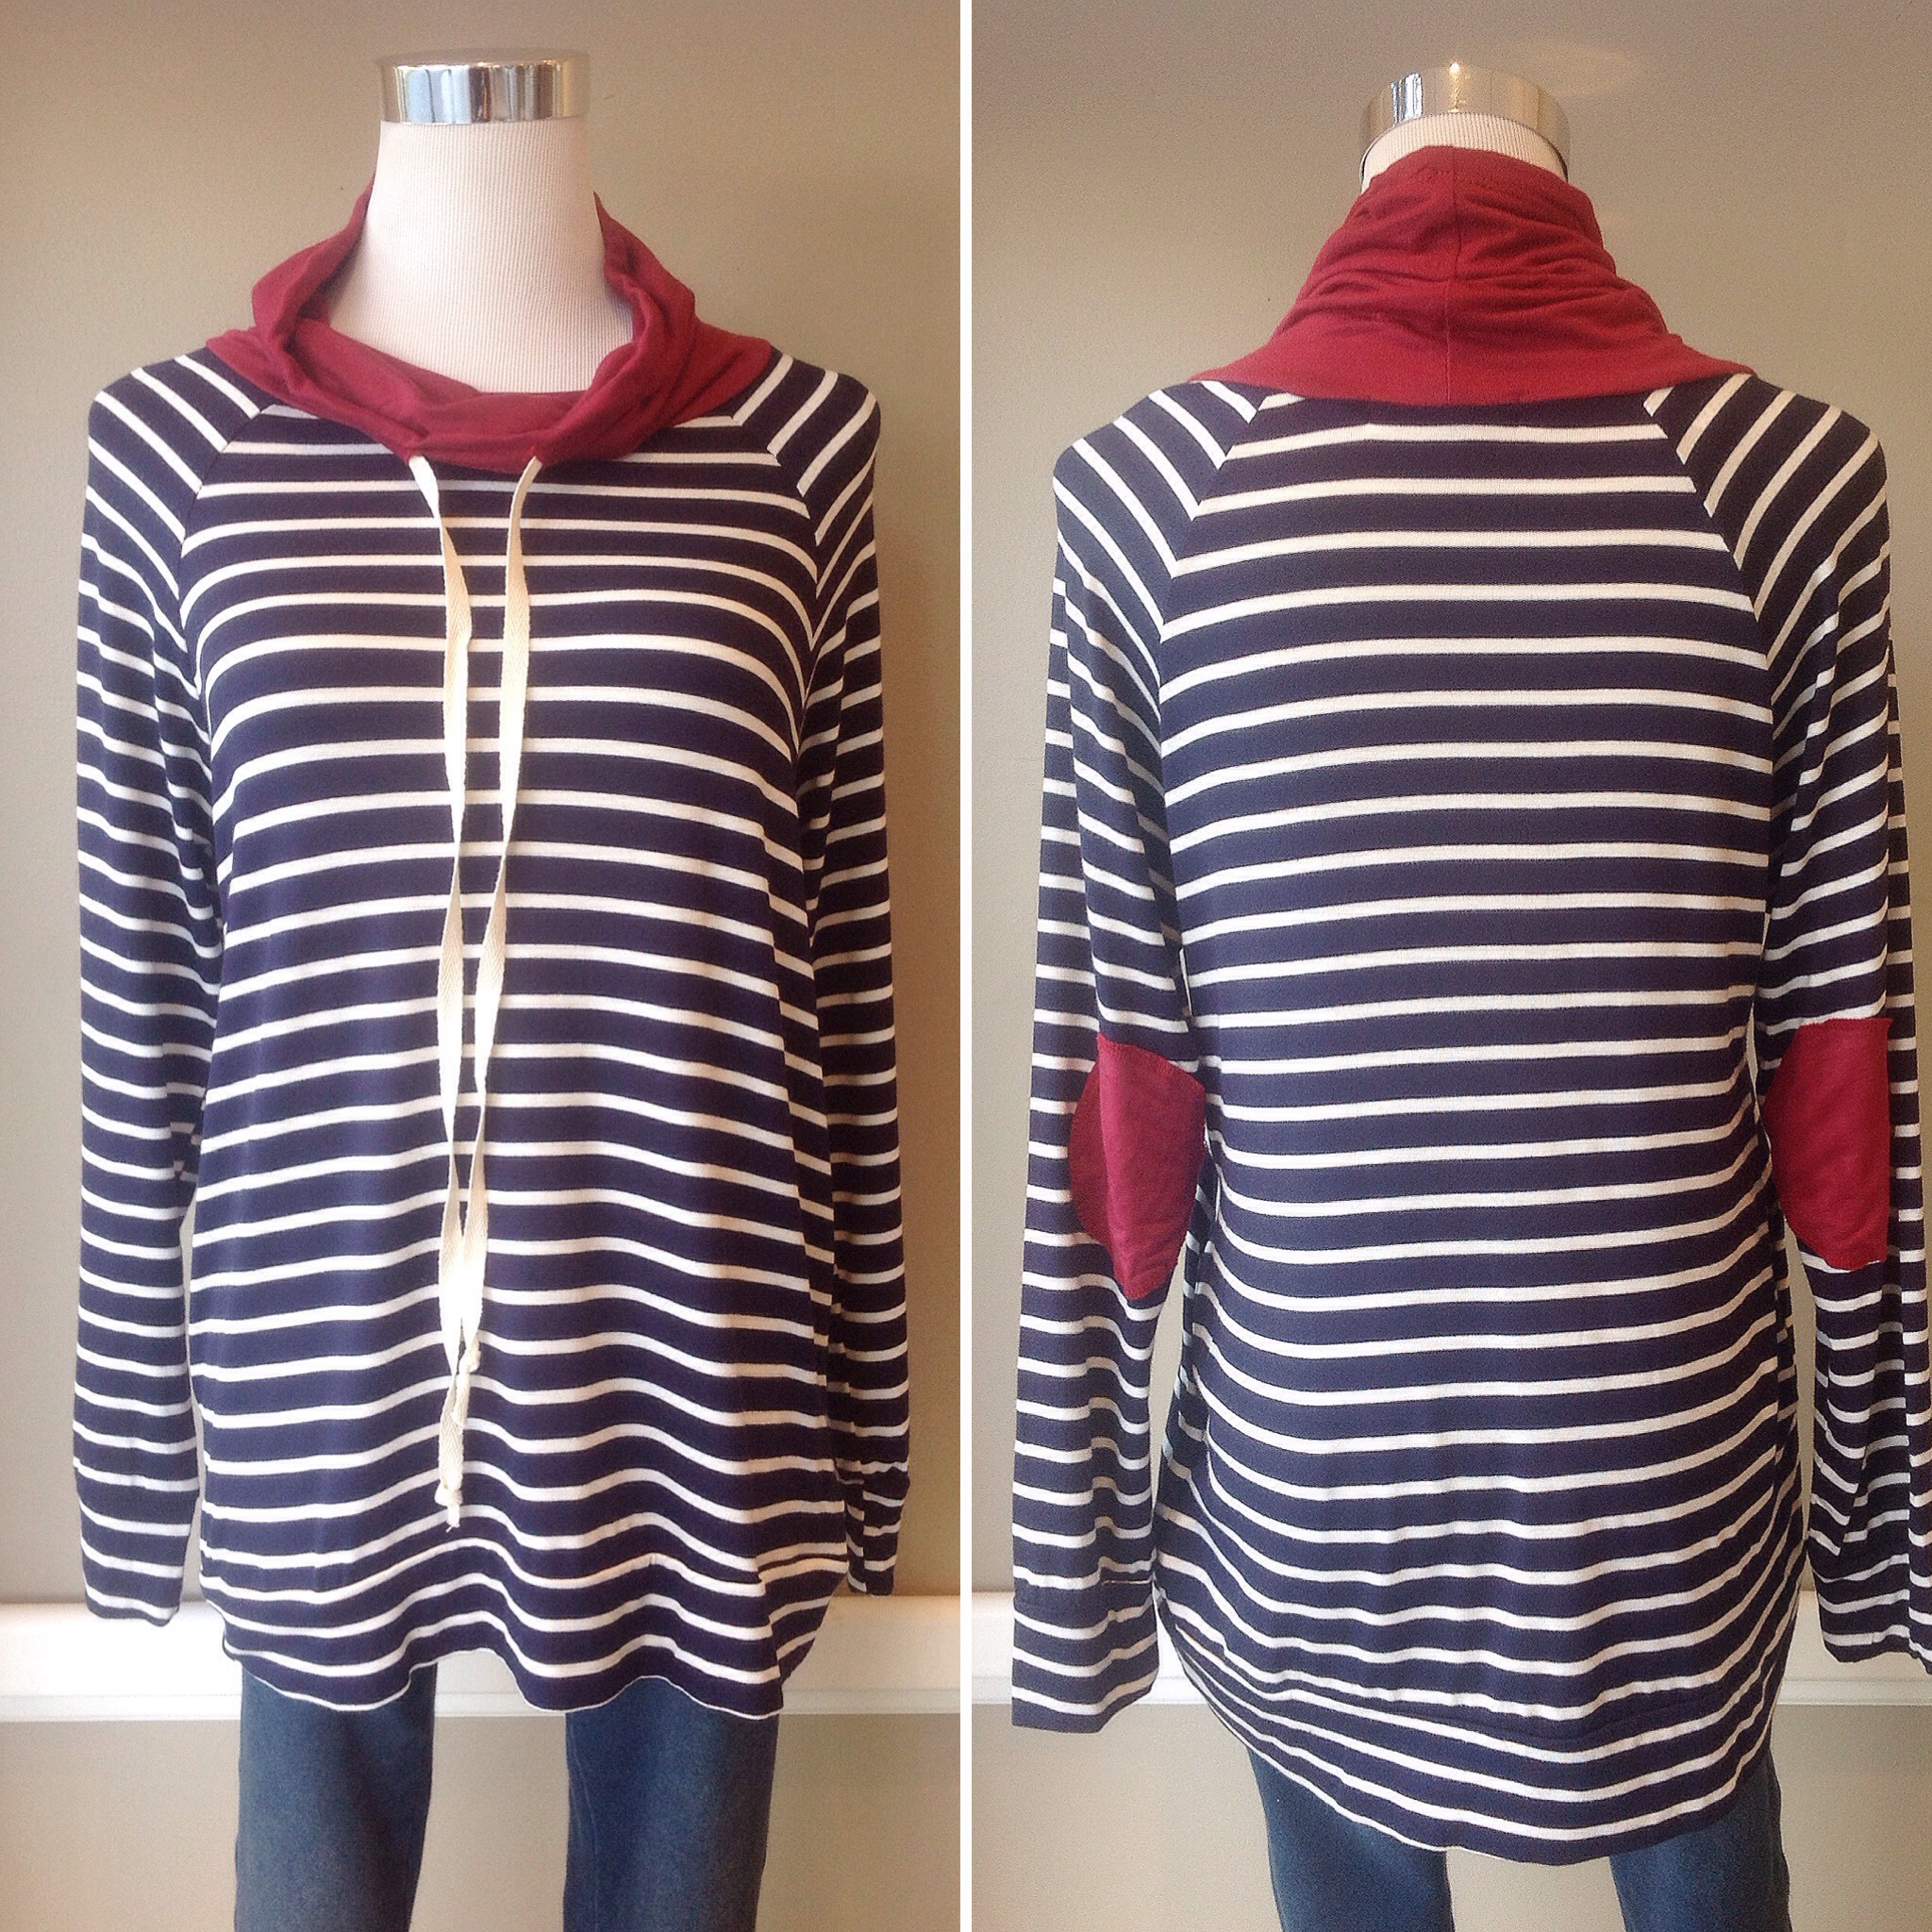 Bestselling Chris and Carol striped cowl top, $35